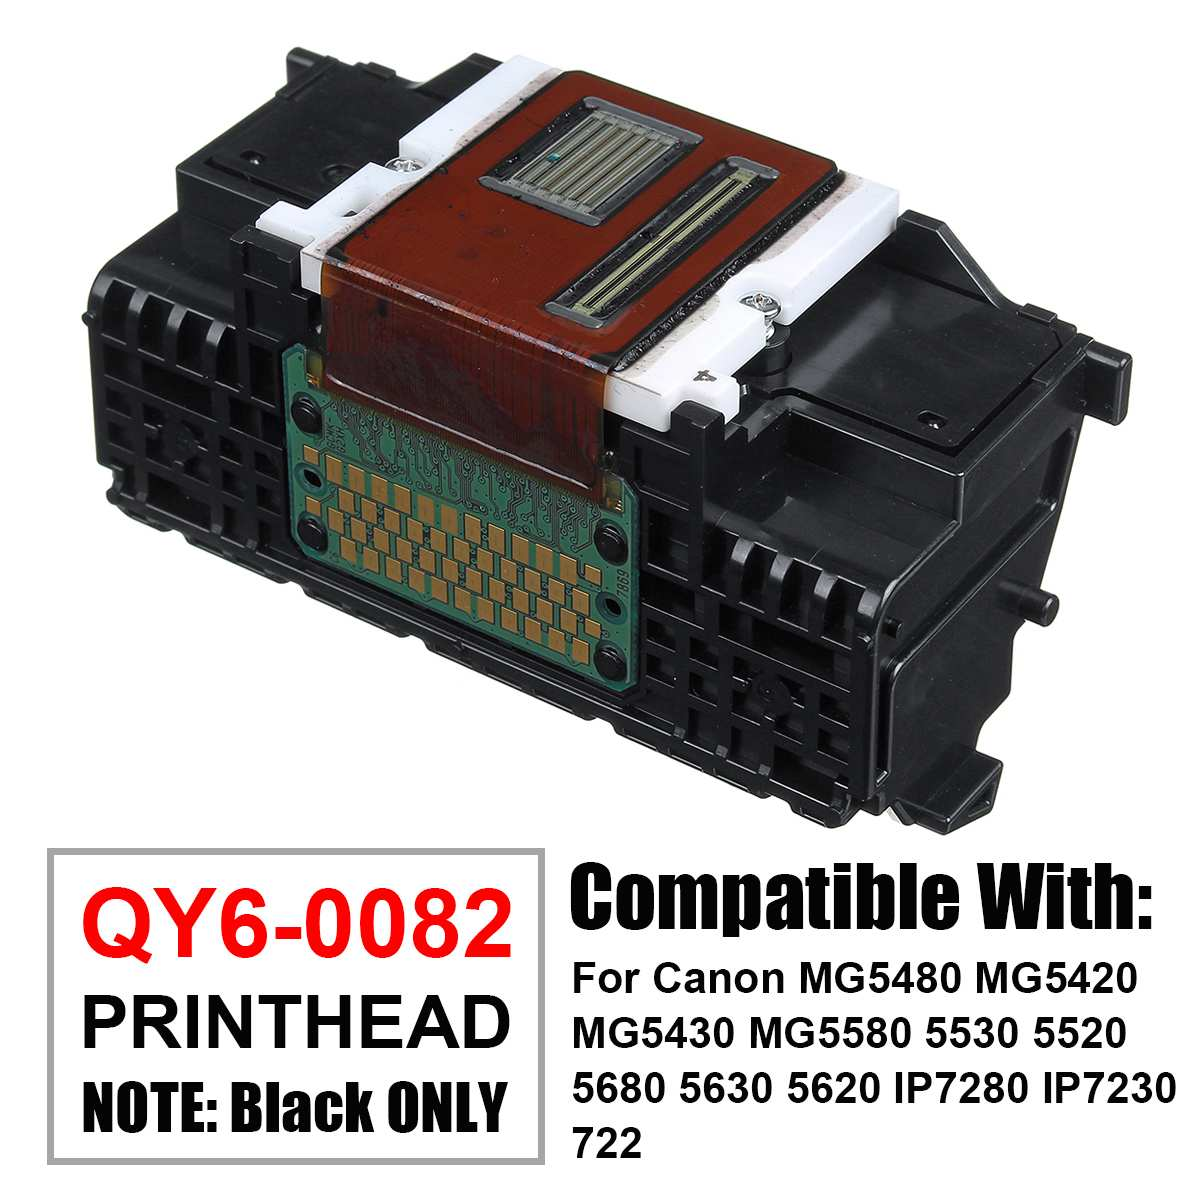 QY6-0082 Printhead Print Head For Canon IP7220 IP7240 IP7250 IP7280 MG5420 MG5450 MG5480 MG5520 MG5550 MG6400 MG6420 MG6450